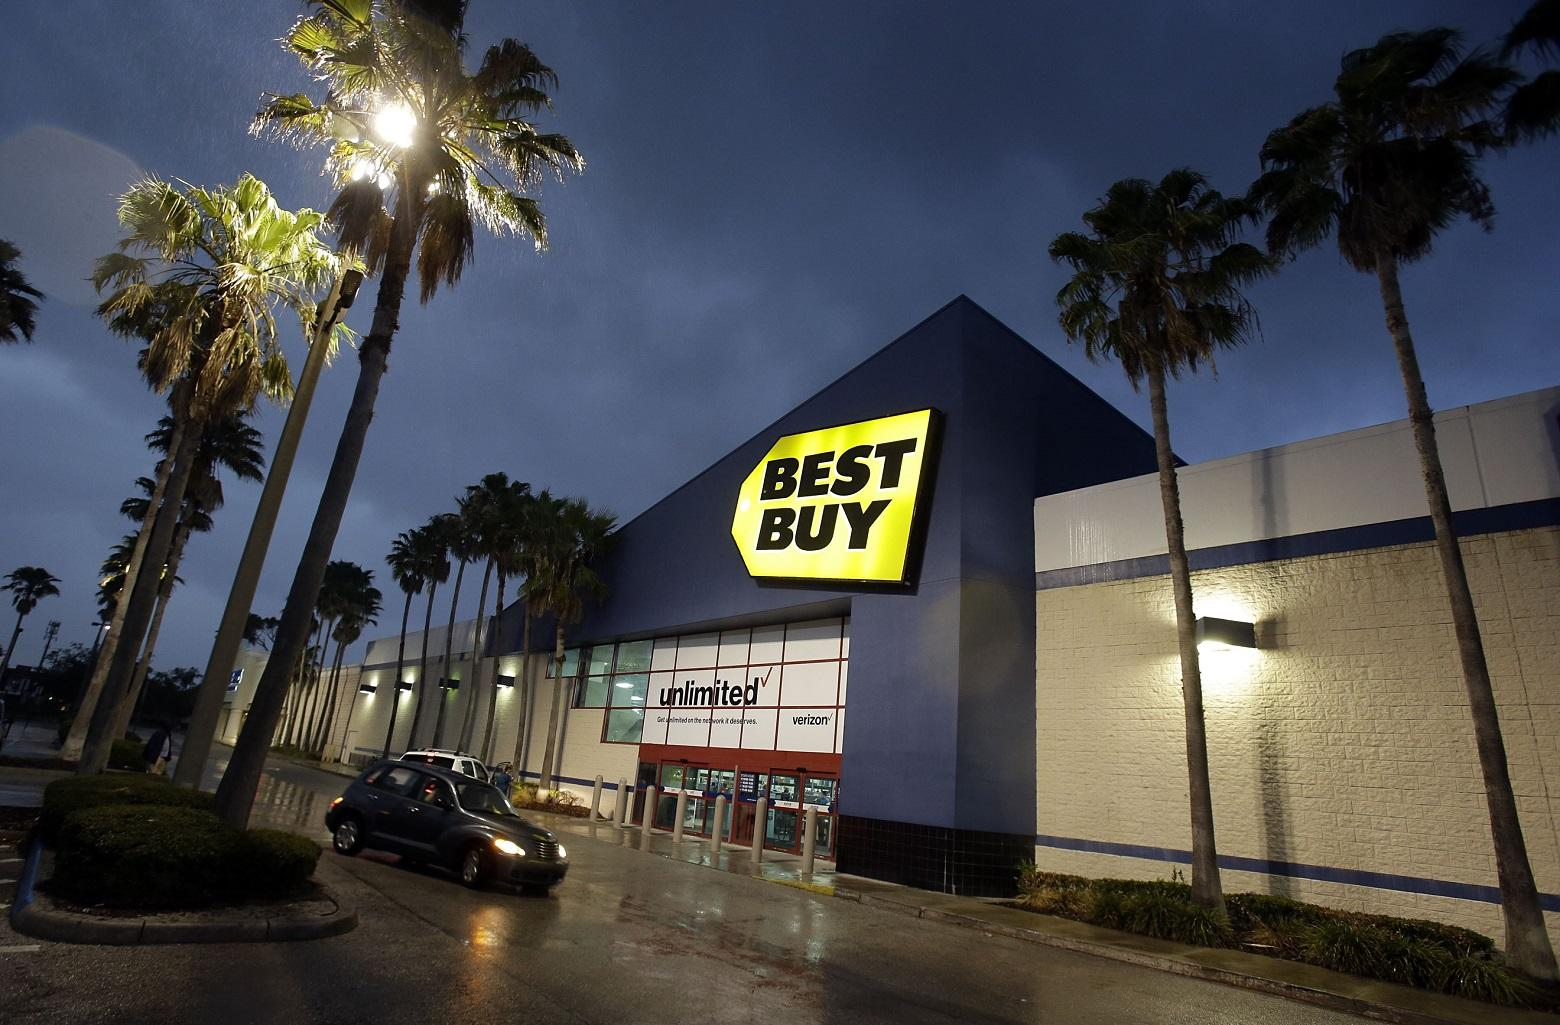 Best Buy's Cyber Monday deals start today: Killer prices on HDTVs, iPhone 6s and more